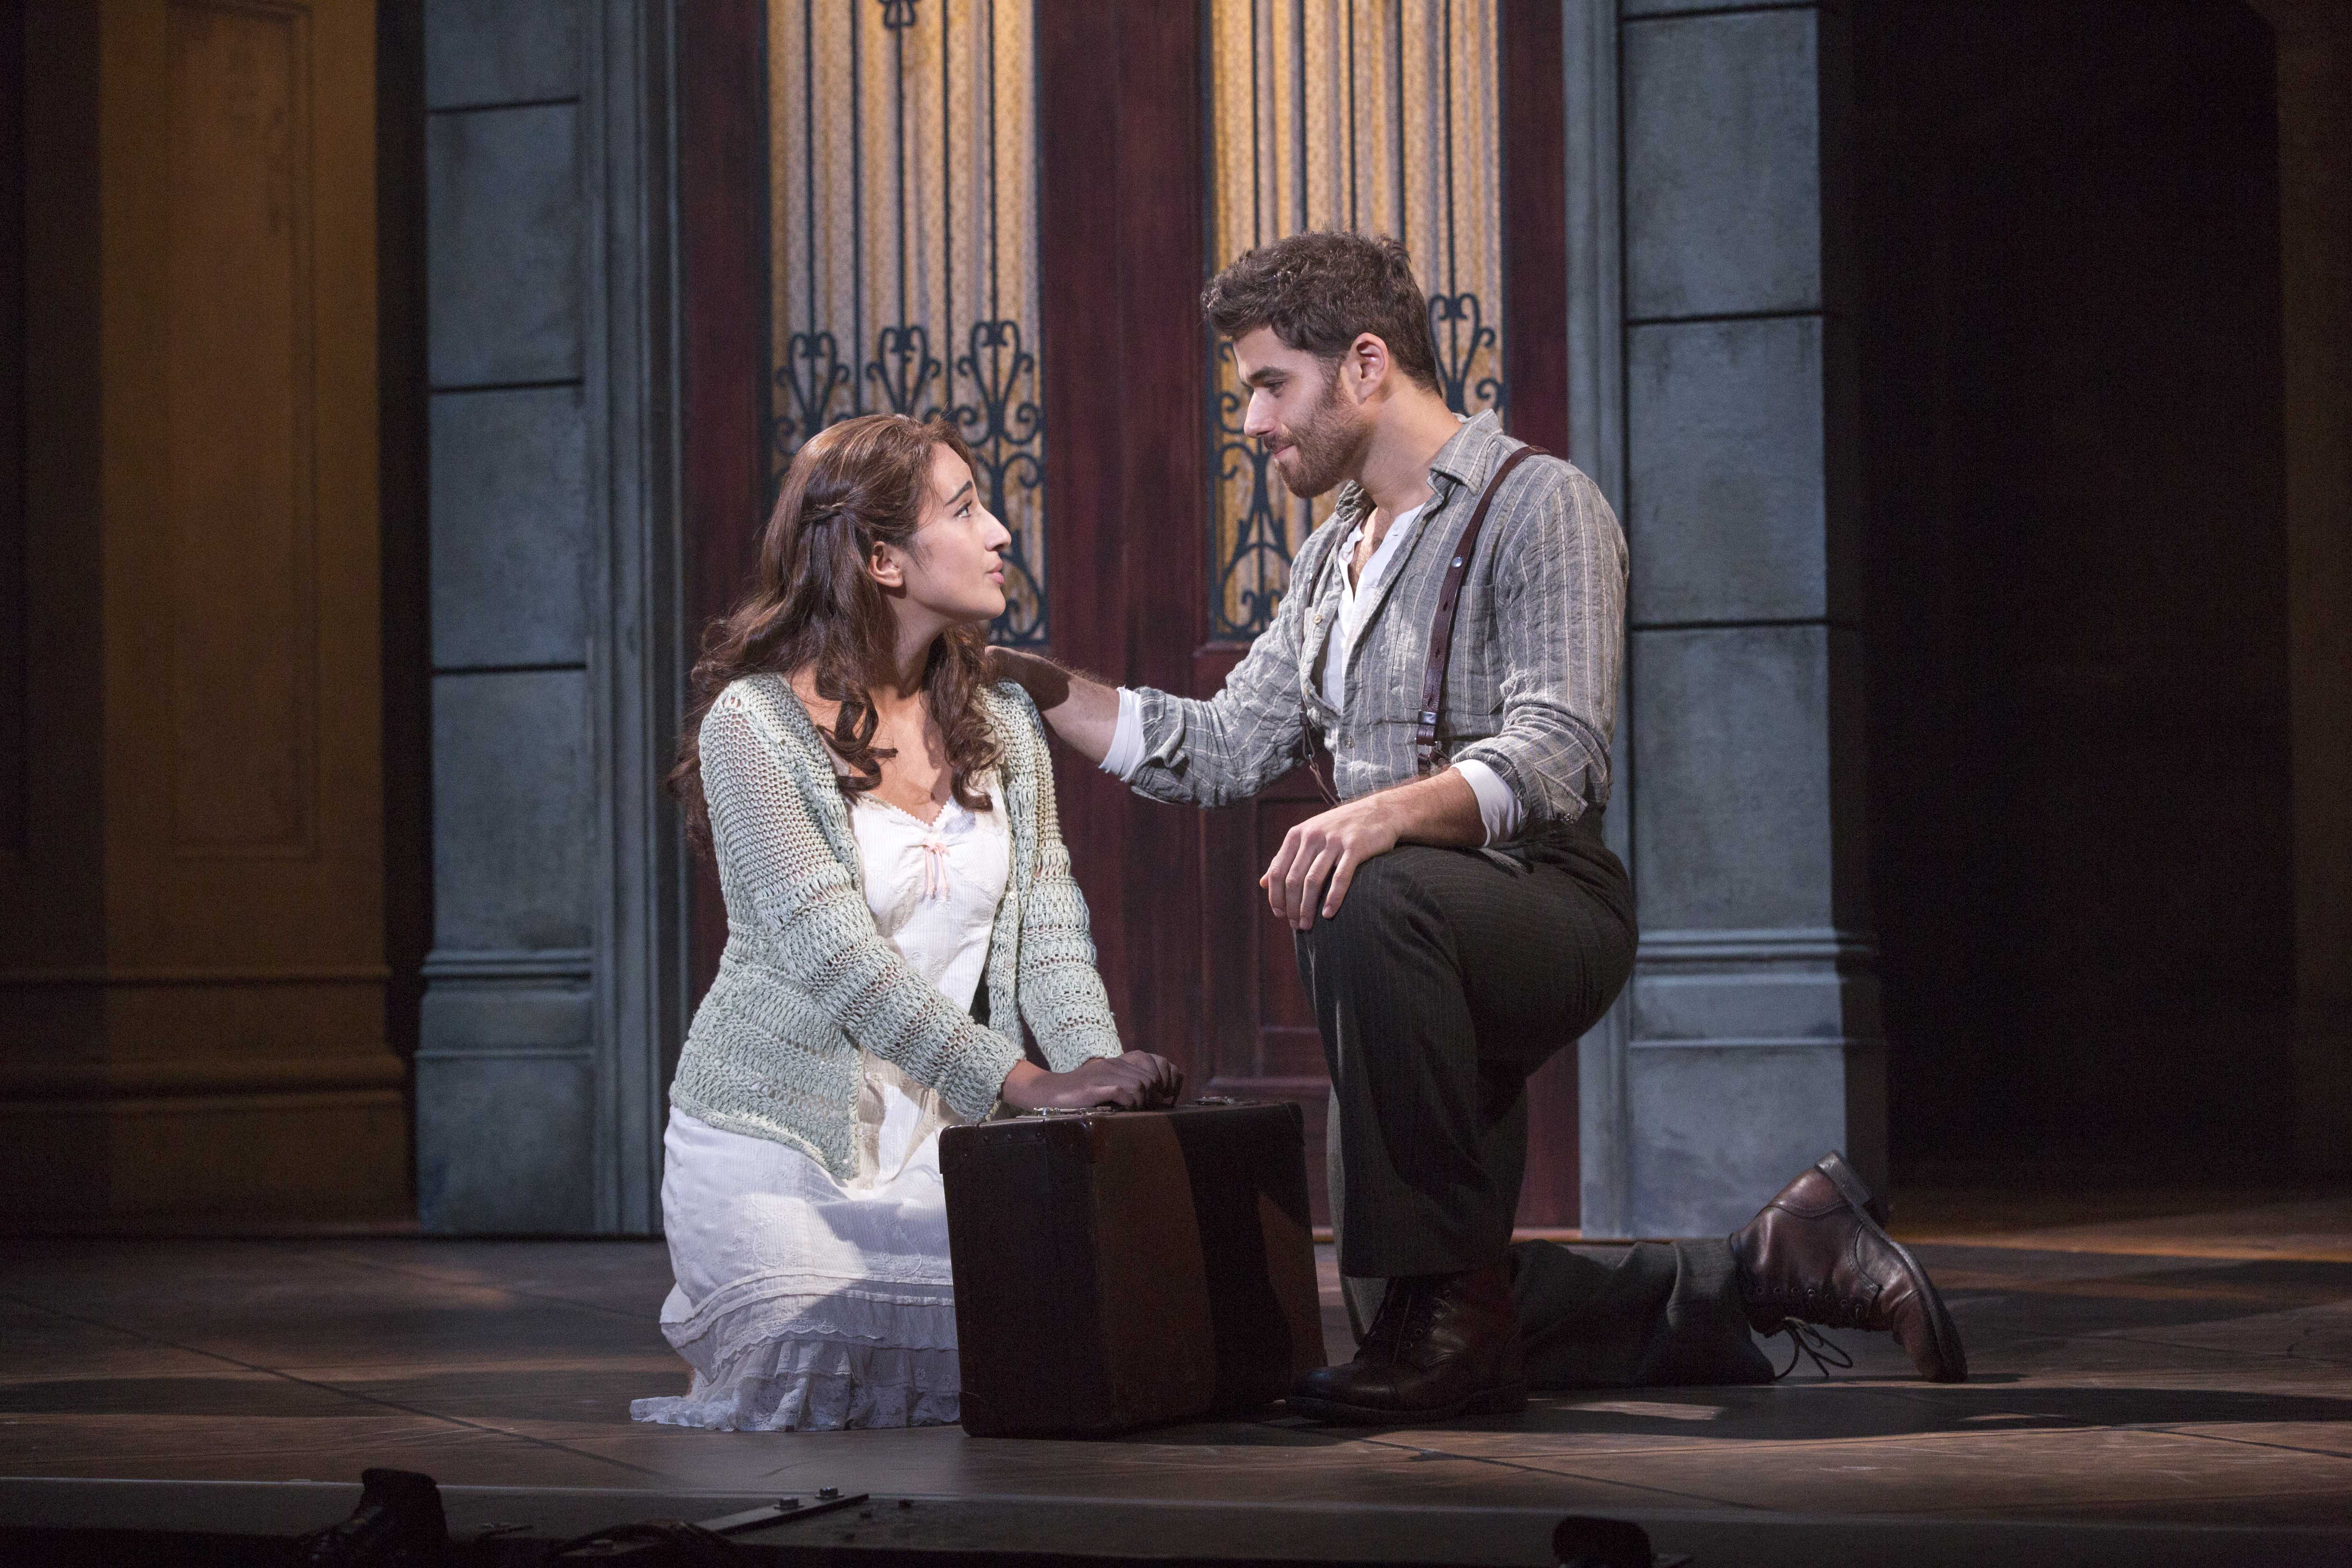 Krystina Alabado as the Mistress and Josh Young as Che in the National Tour of EVITA. Photo Credit: Richard Termine